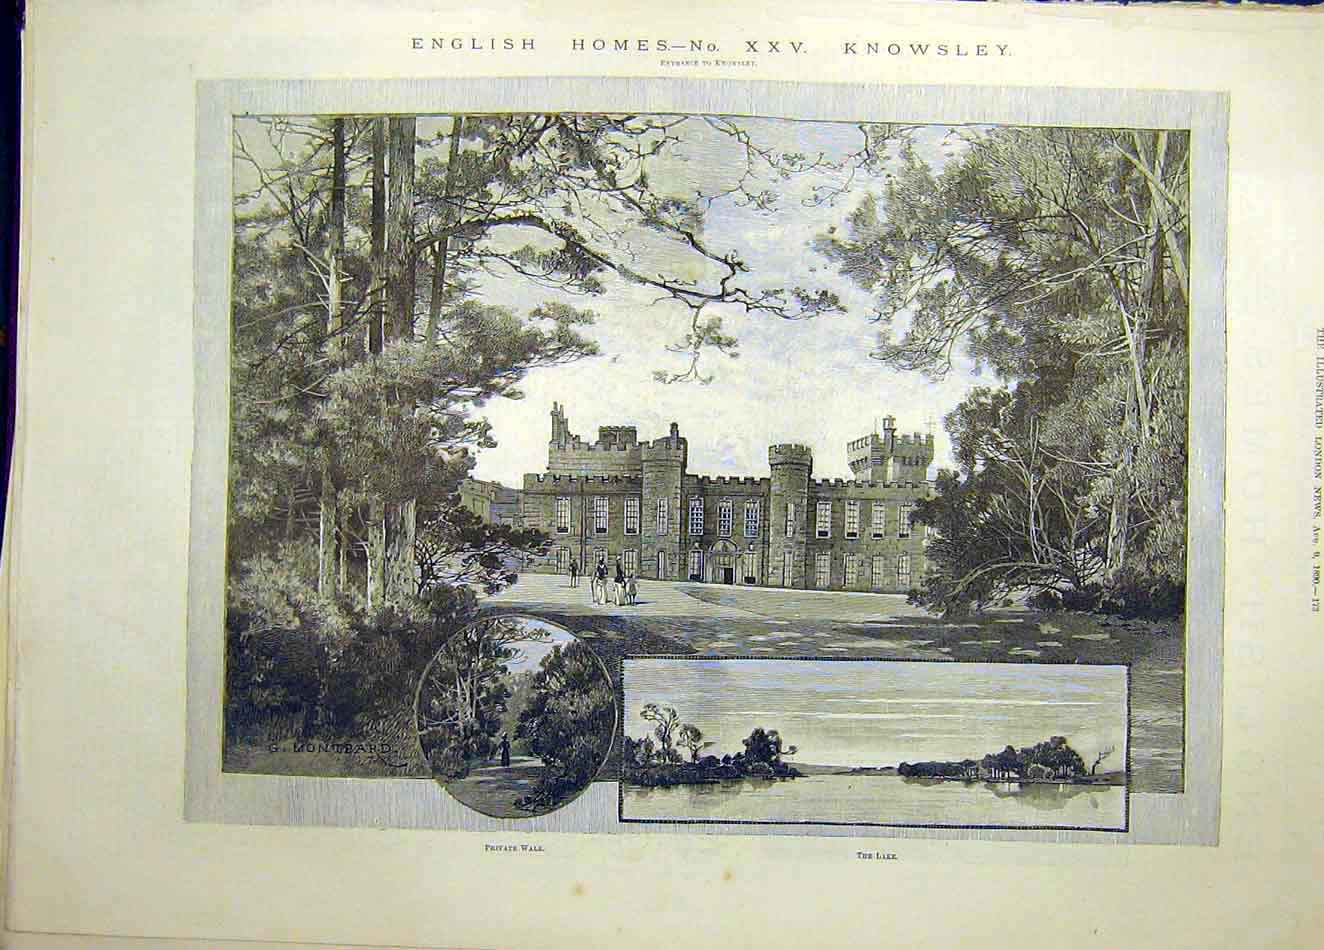 Print 1890 Knowsley English Homes Building 037921 Old Original